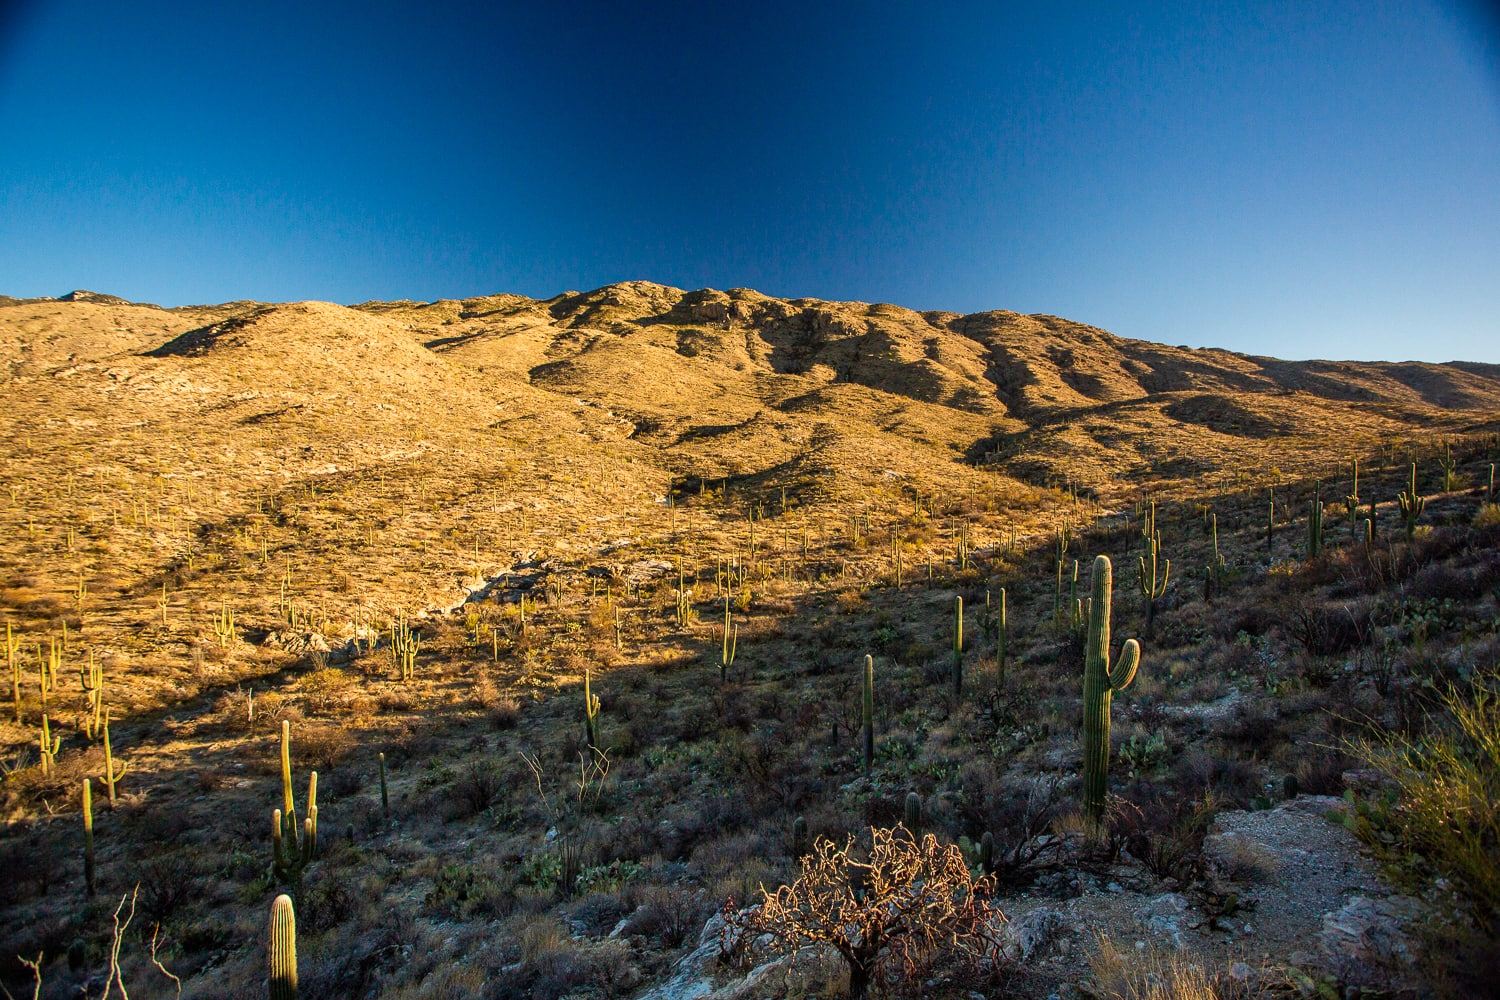 Saguaro cactuses dot the valley in the desert